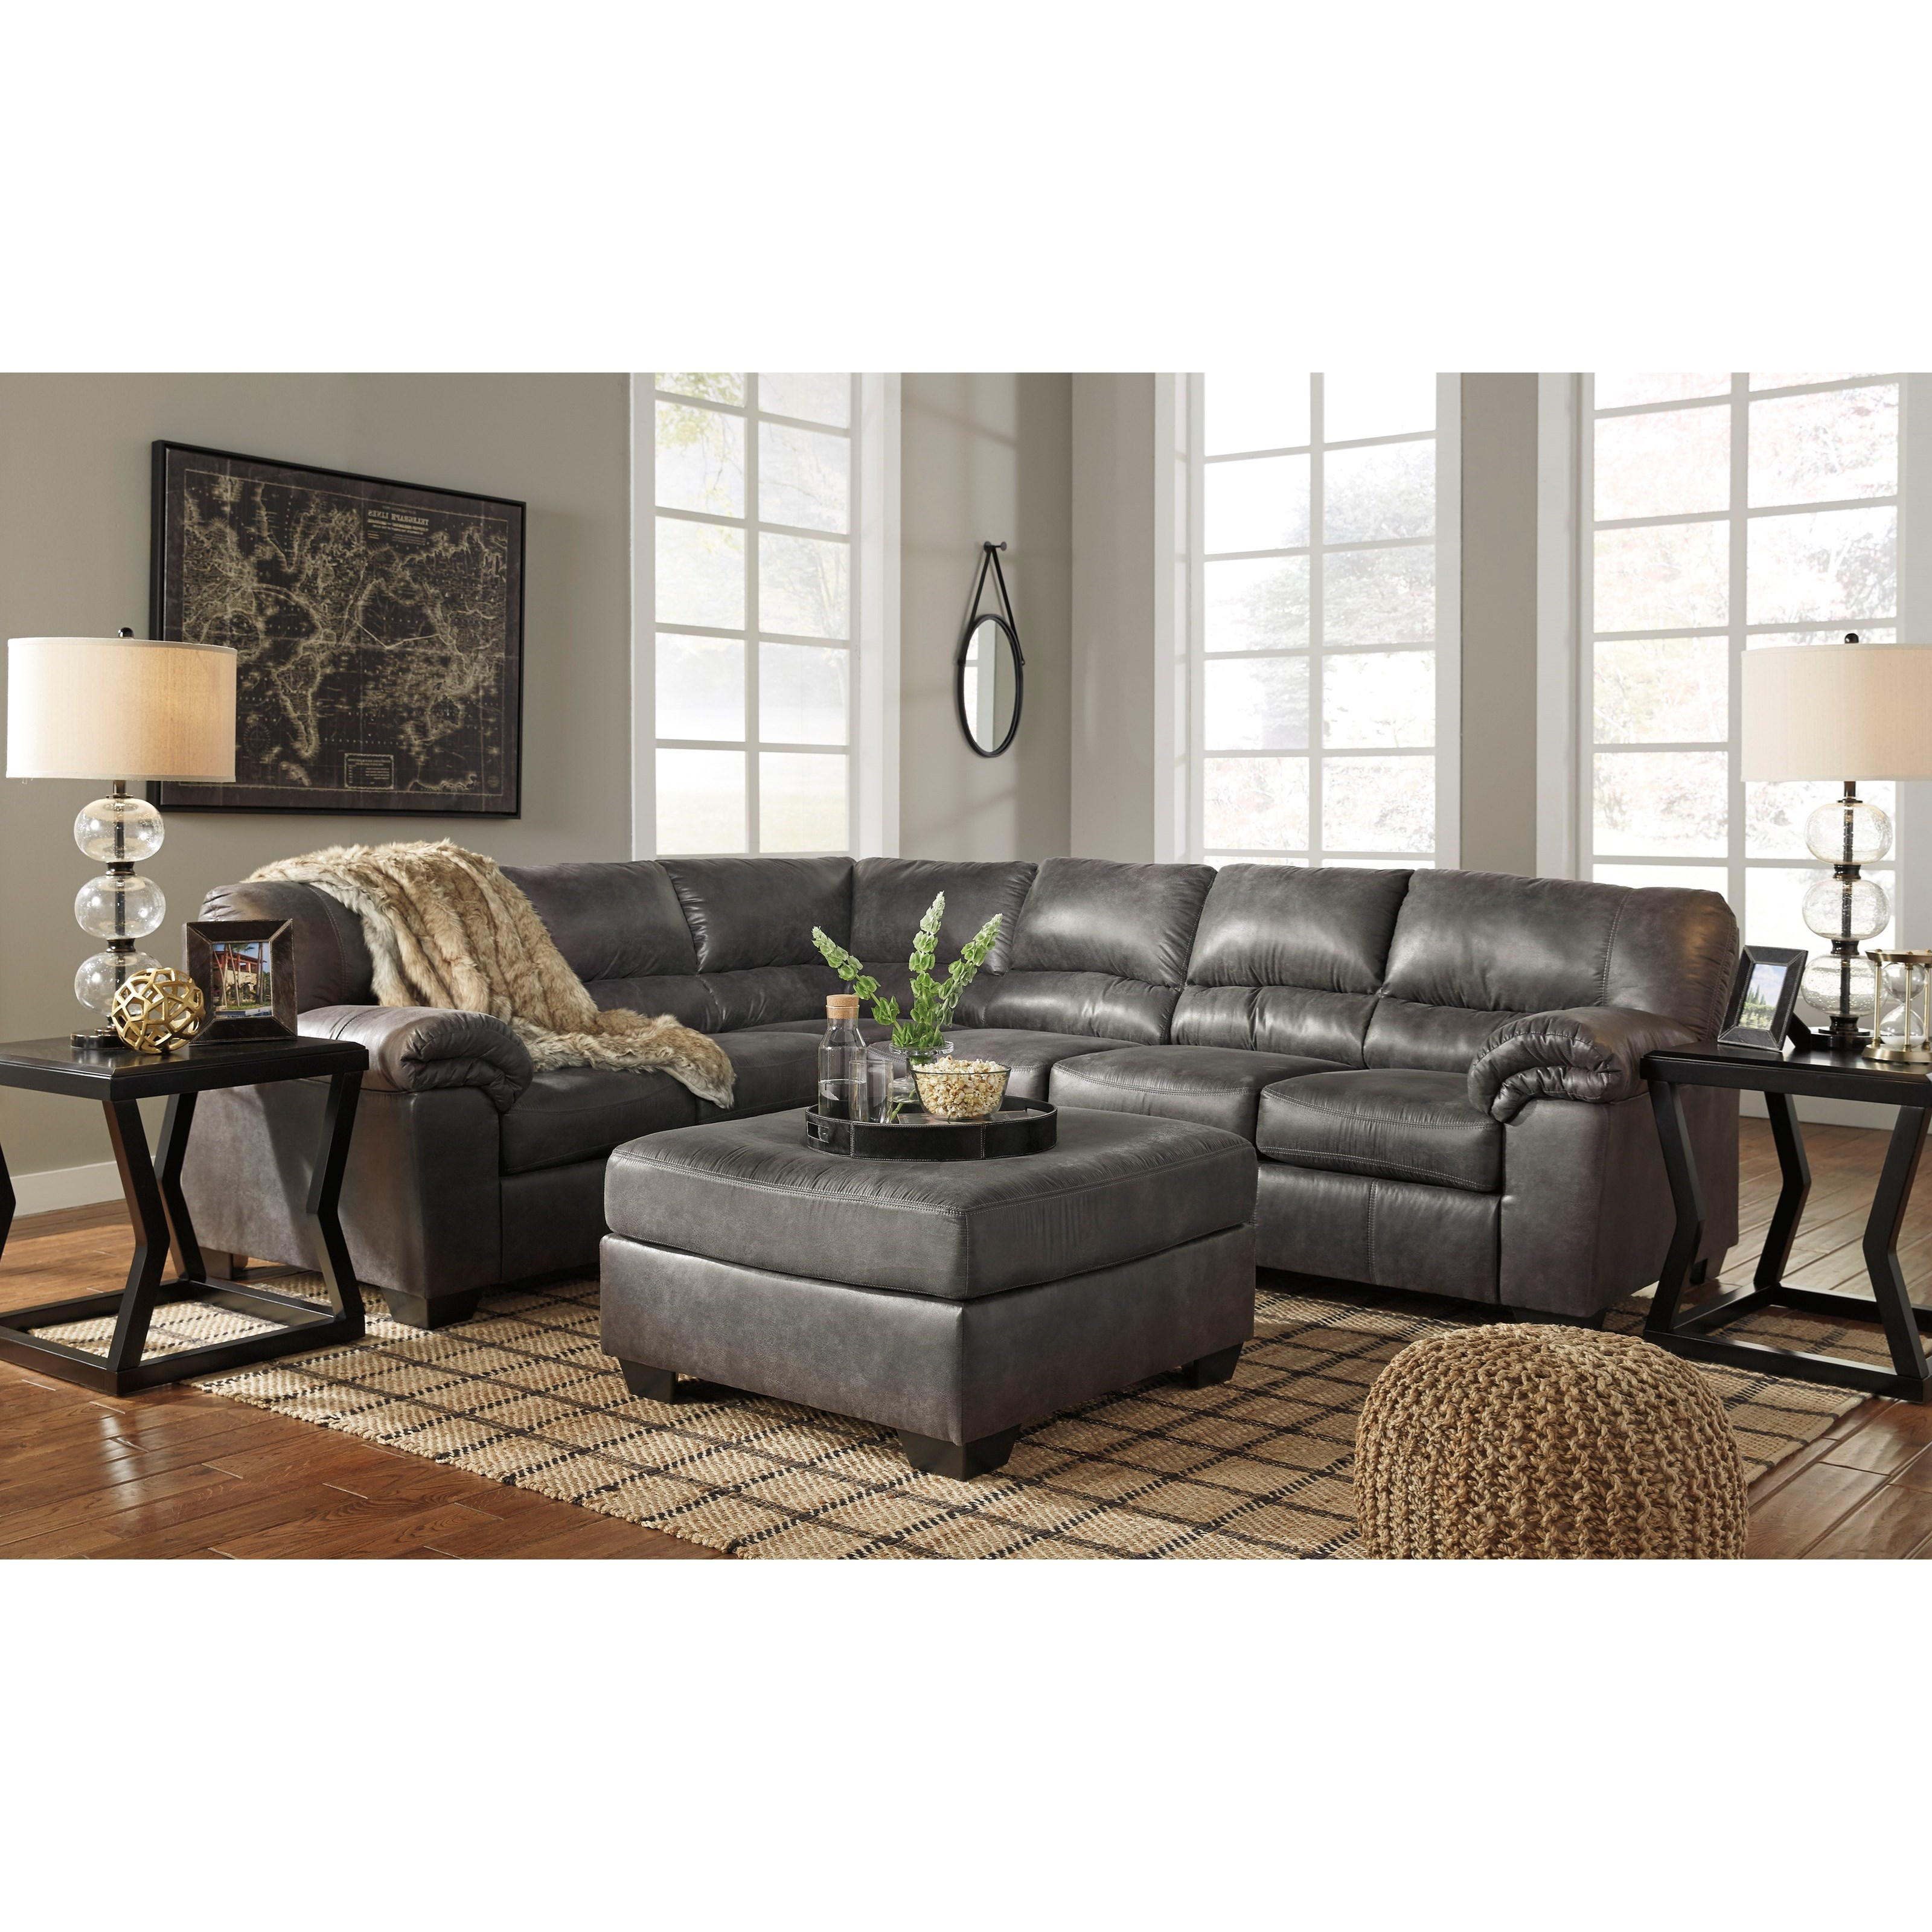 Bladen Stationary Living Room Group by Signature Design by Ashley at Zak's Warehouse Clearance Center